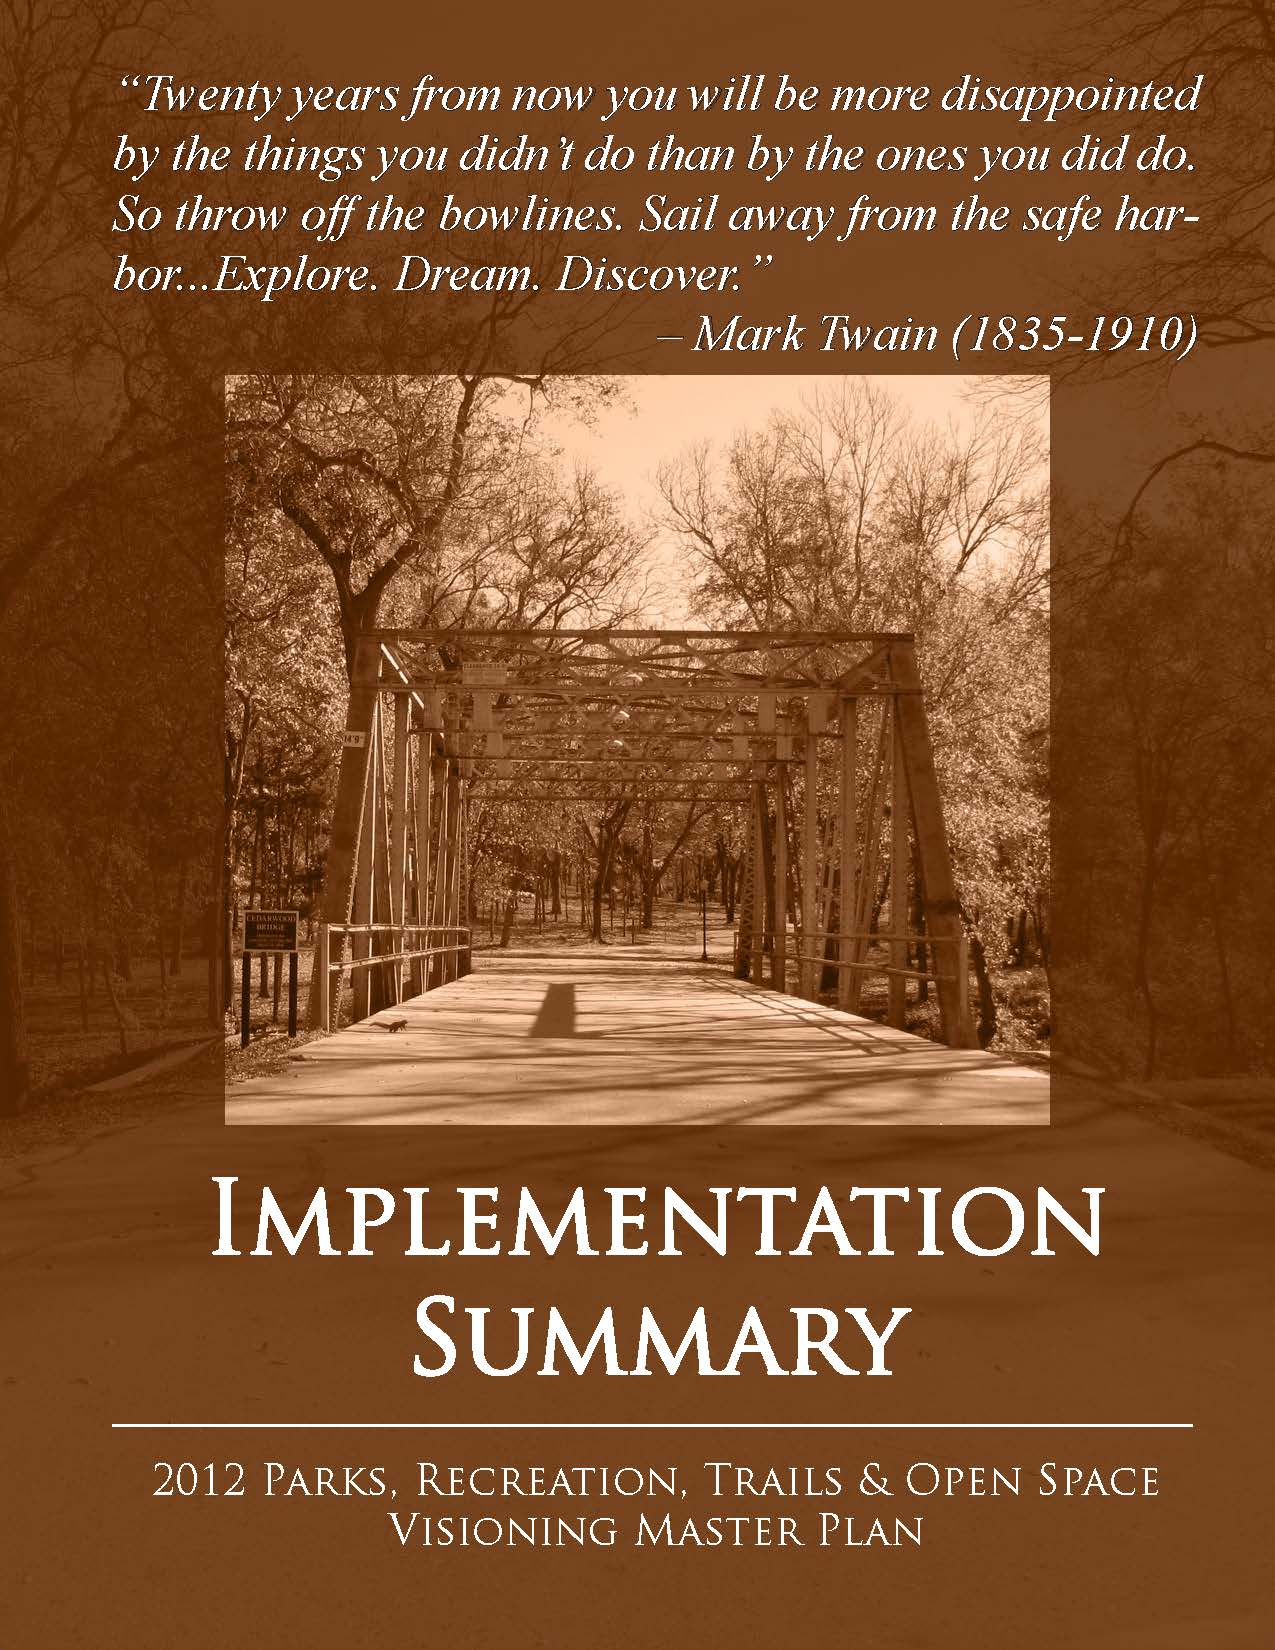 Implementation Summary (PDF)